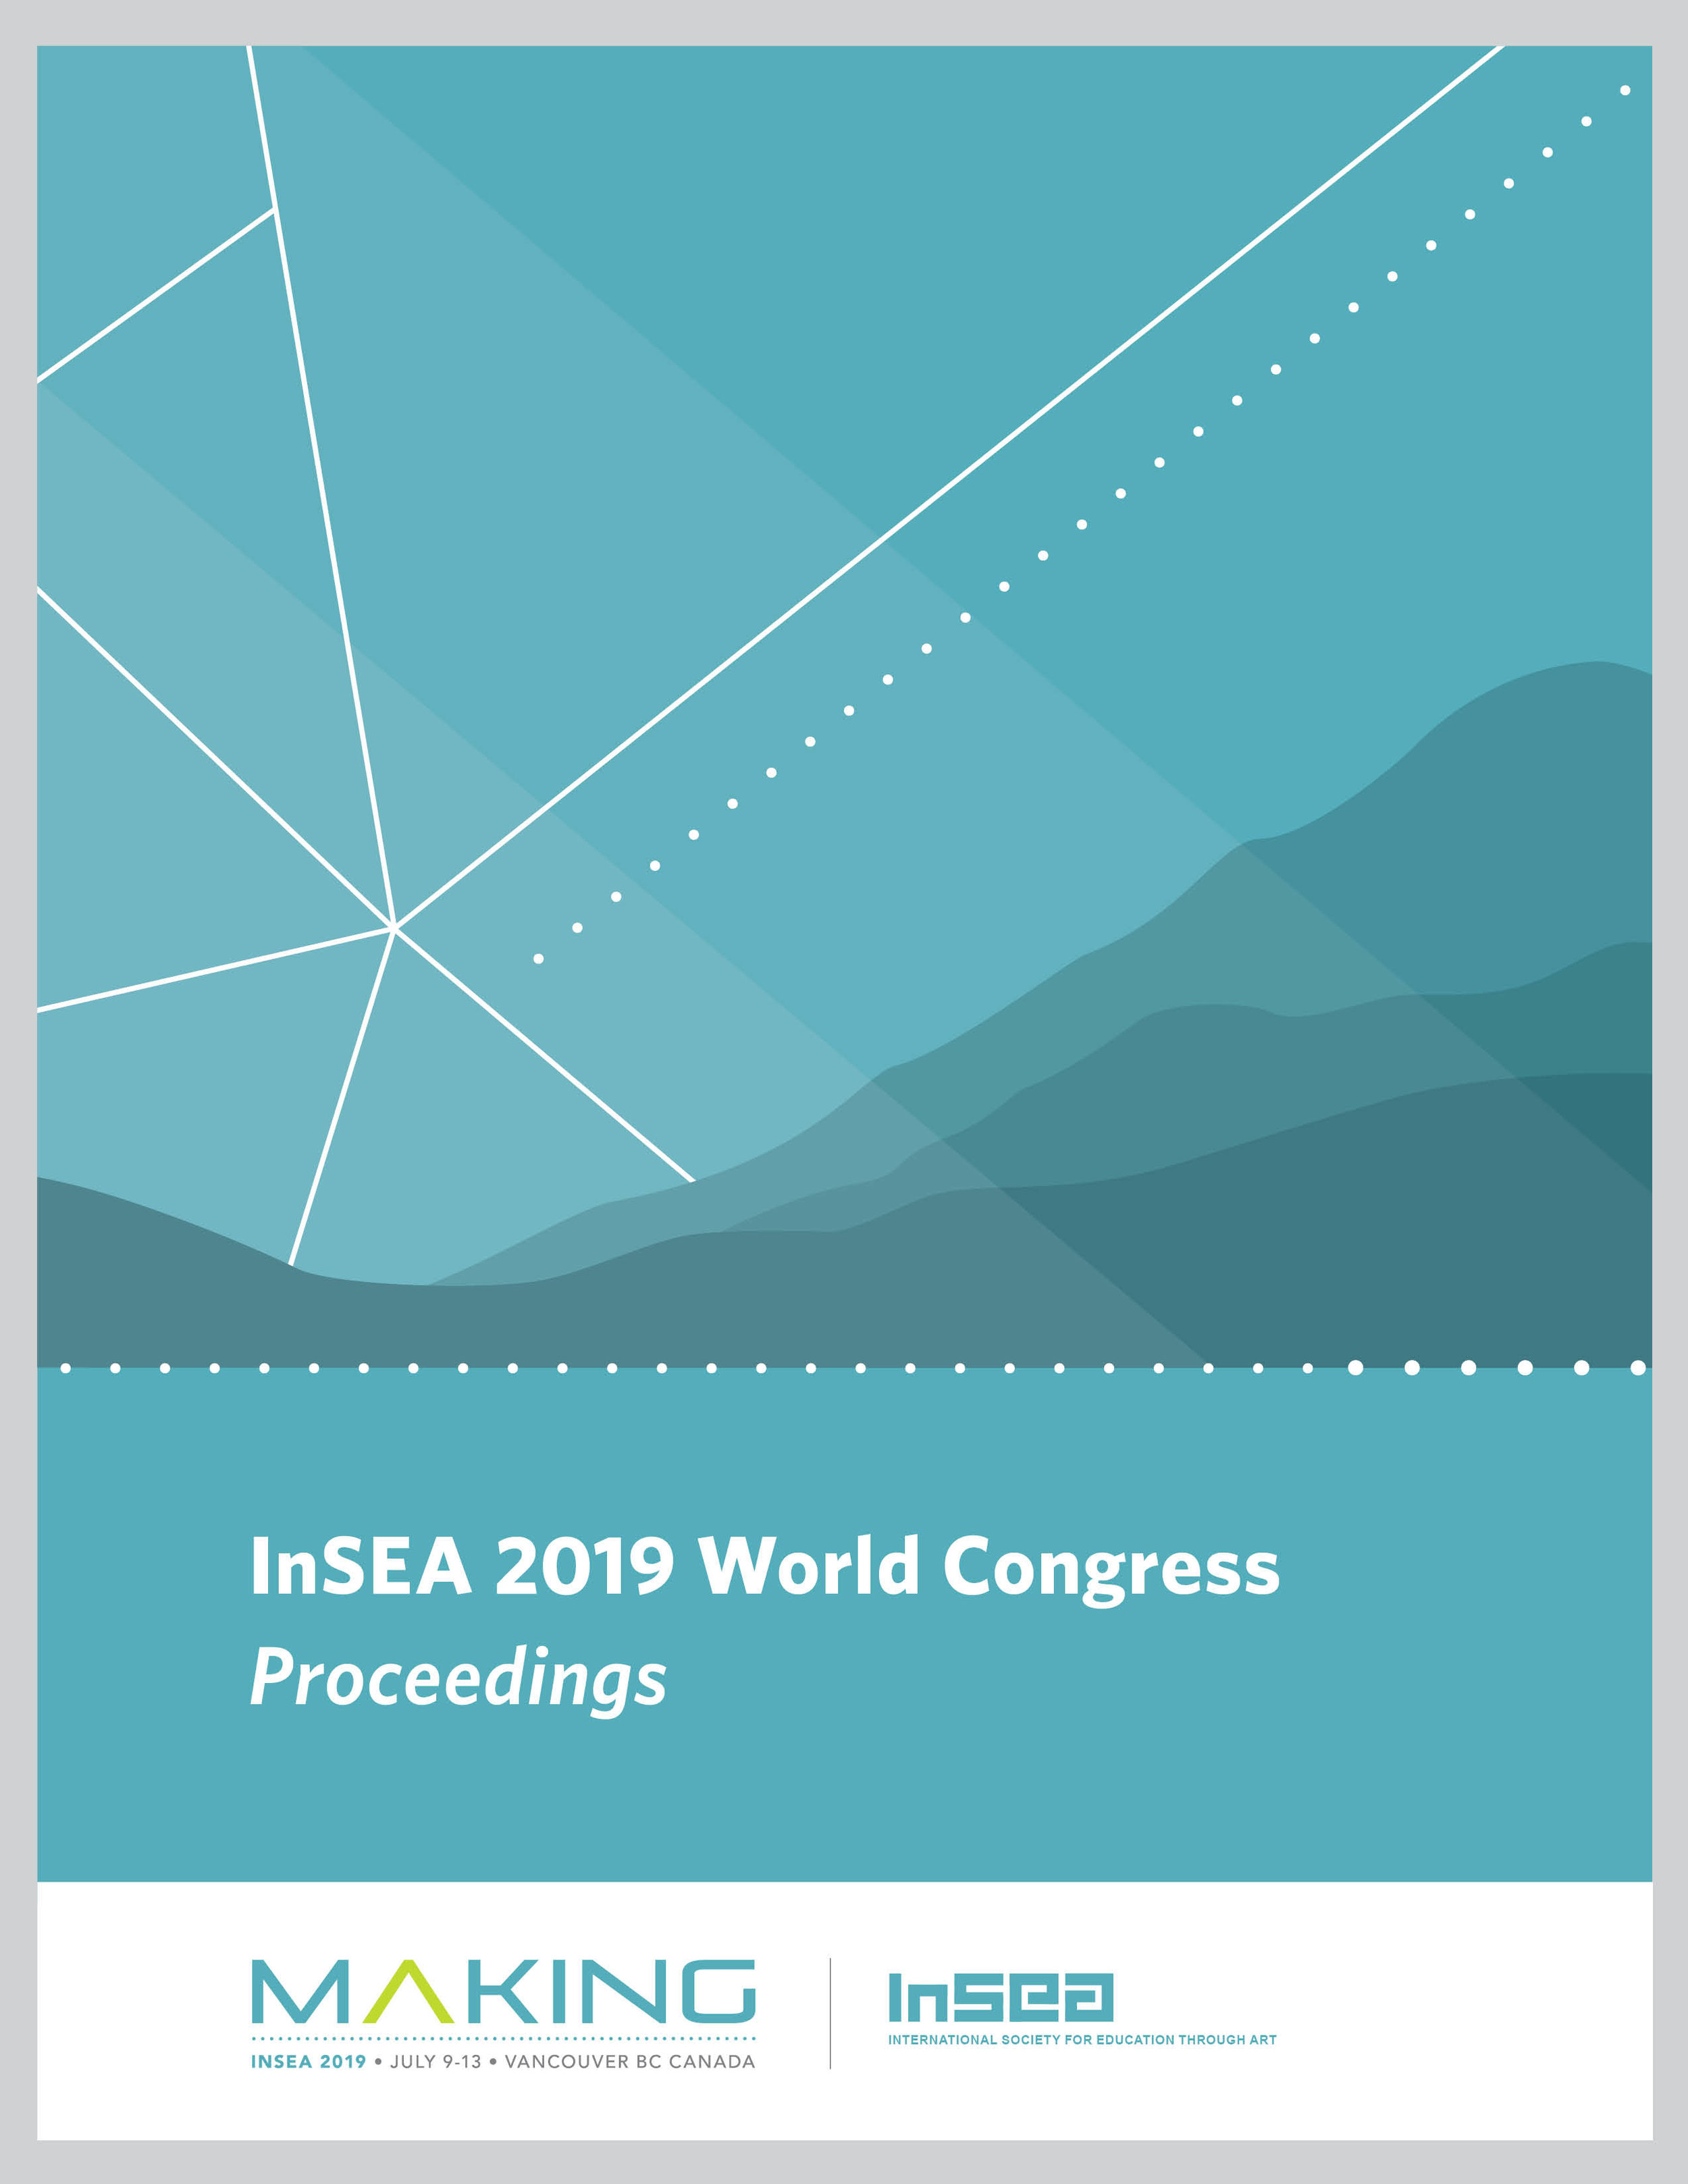 - Please see the following invitation for presenters to submit to the InSEA 2019 World Congress Proceedings